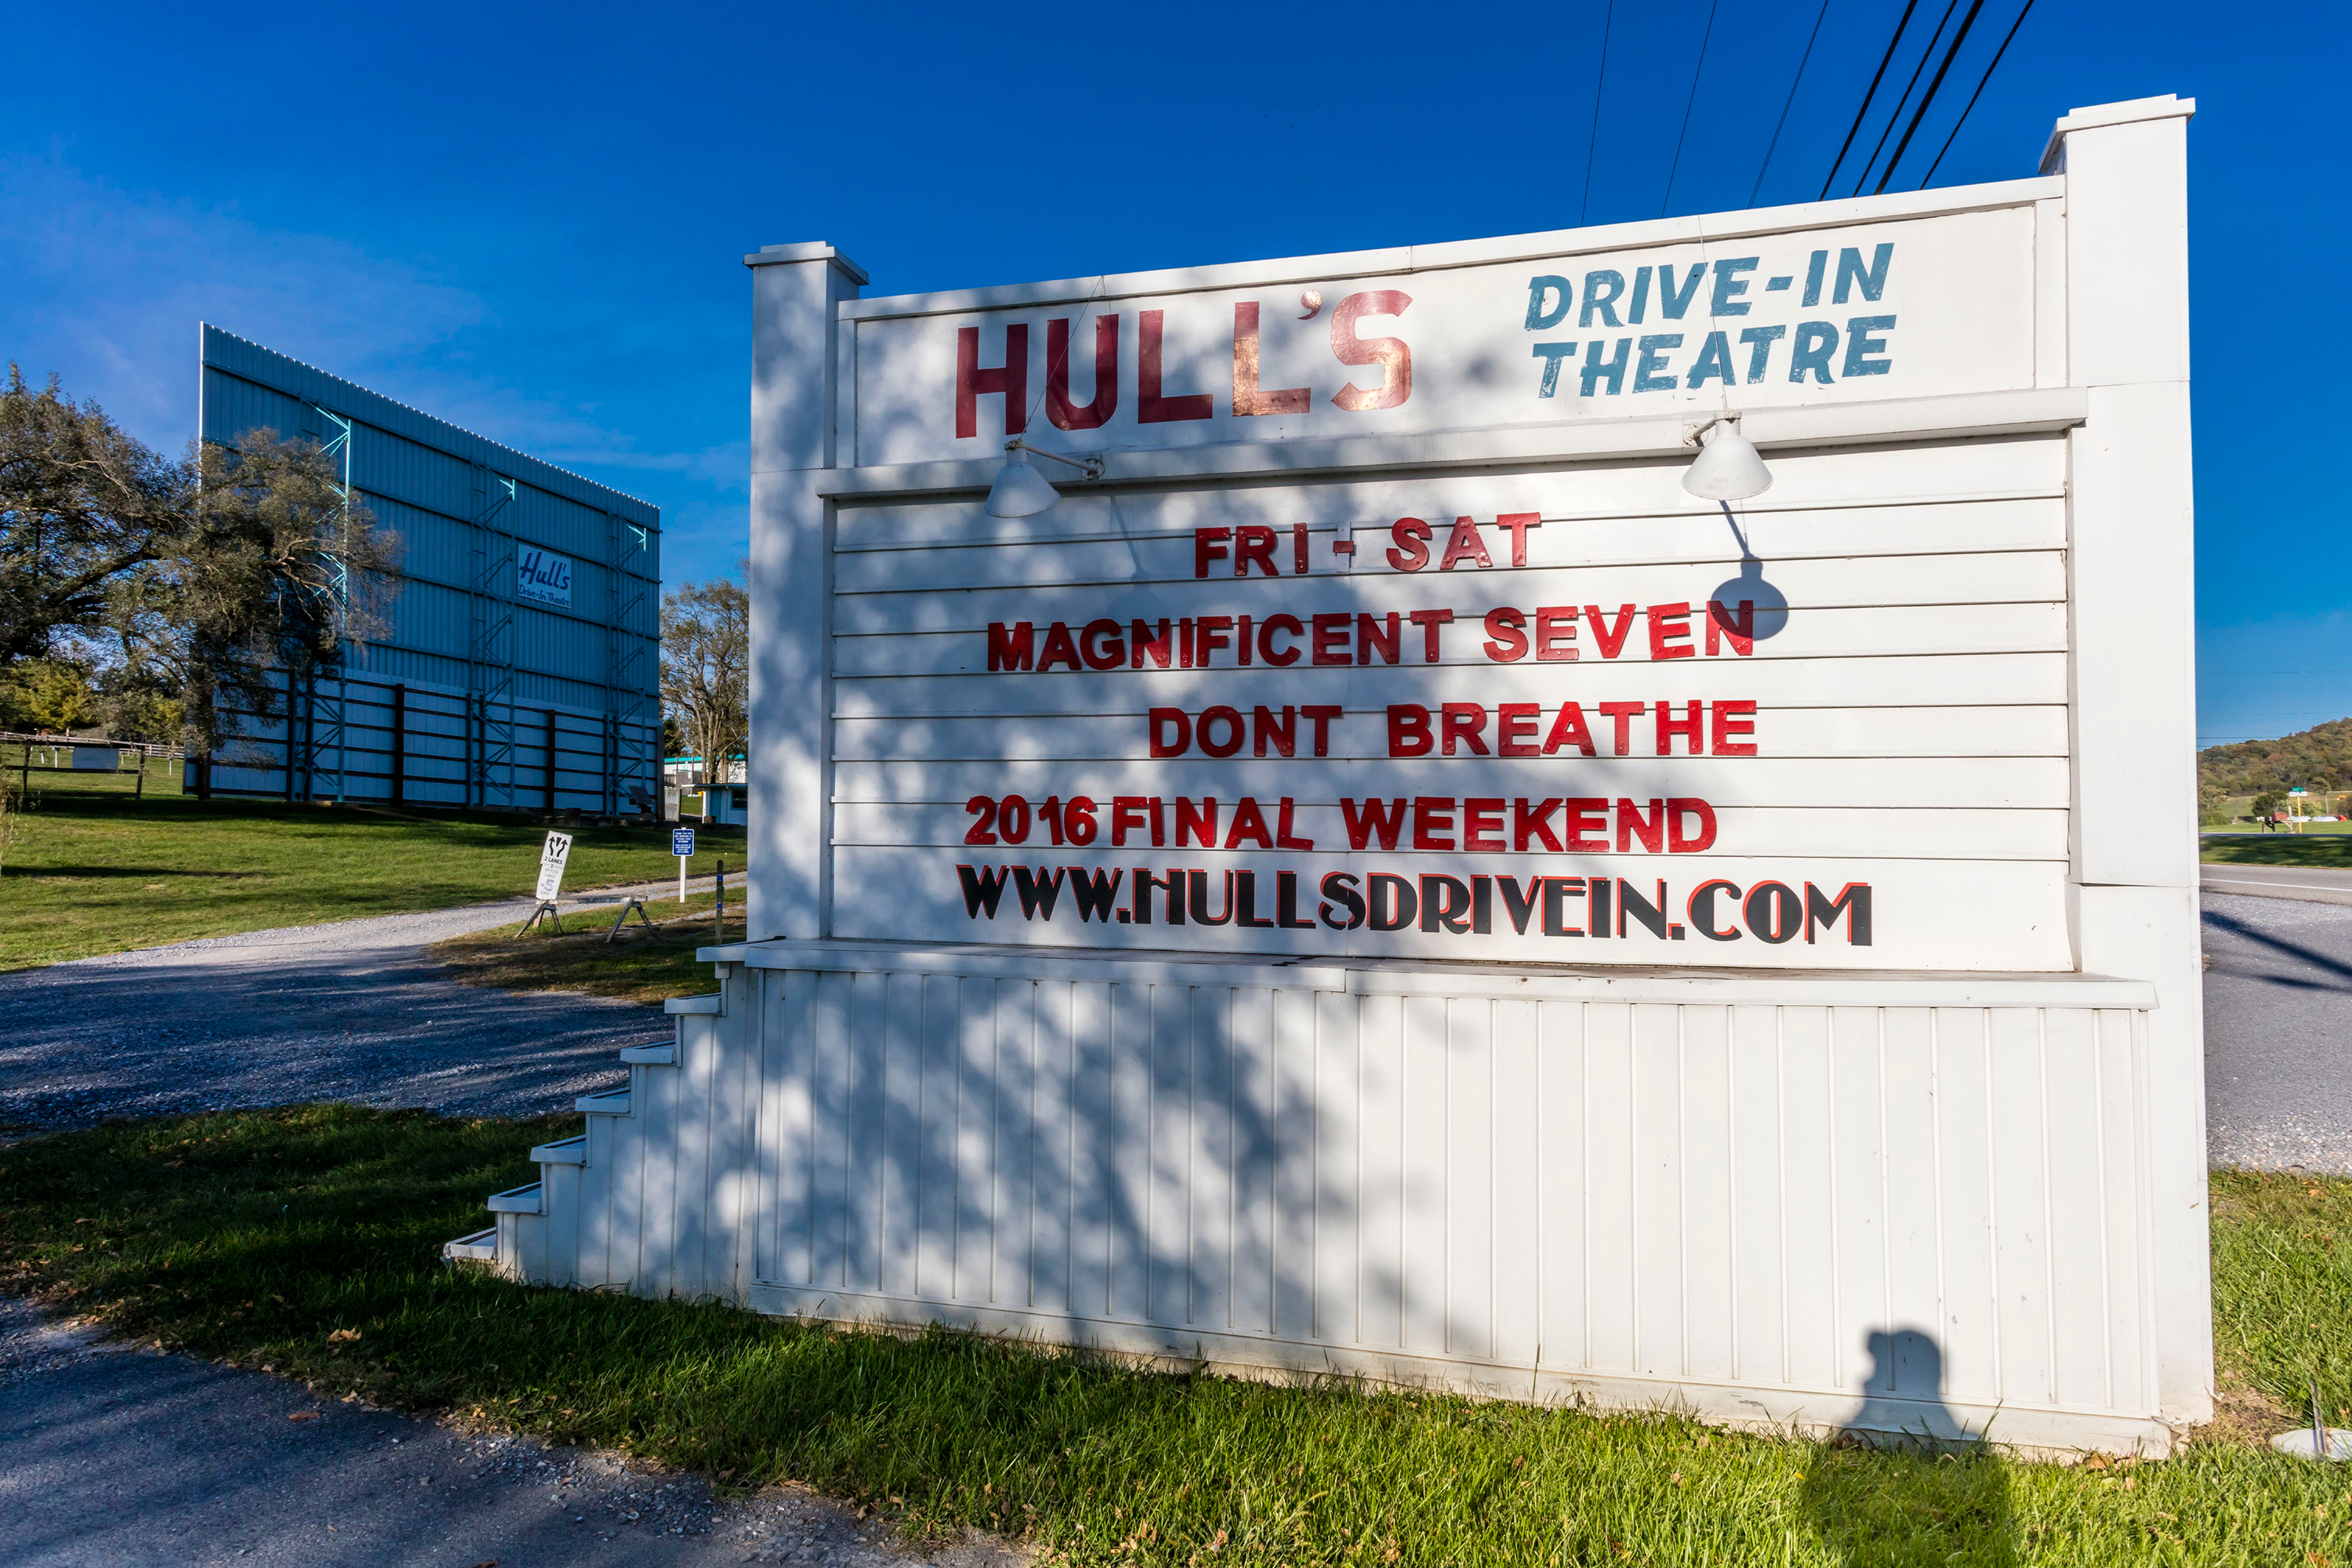 One of seven drive-in theaters left in Virginia, this theater originally opened in 1950 with room for 300 cars. In 1957, it was sold and renamed the Hull's Drive-In—it operated in stride up until 1998, when it had to shut its gates. But in 2001, a community-led group of organizers raised enough funds to purchase the drive-in outright, reopening it to the public; it's America's only non-profit community-owned drive-in today.